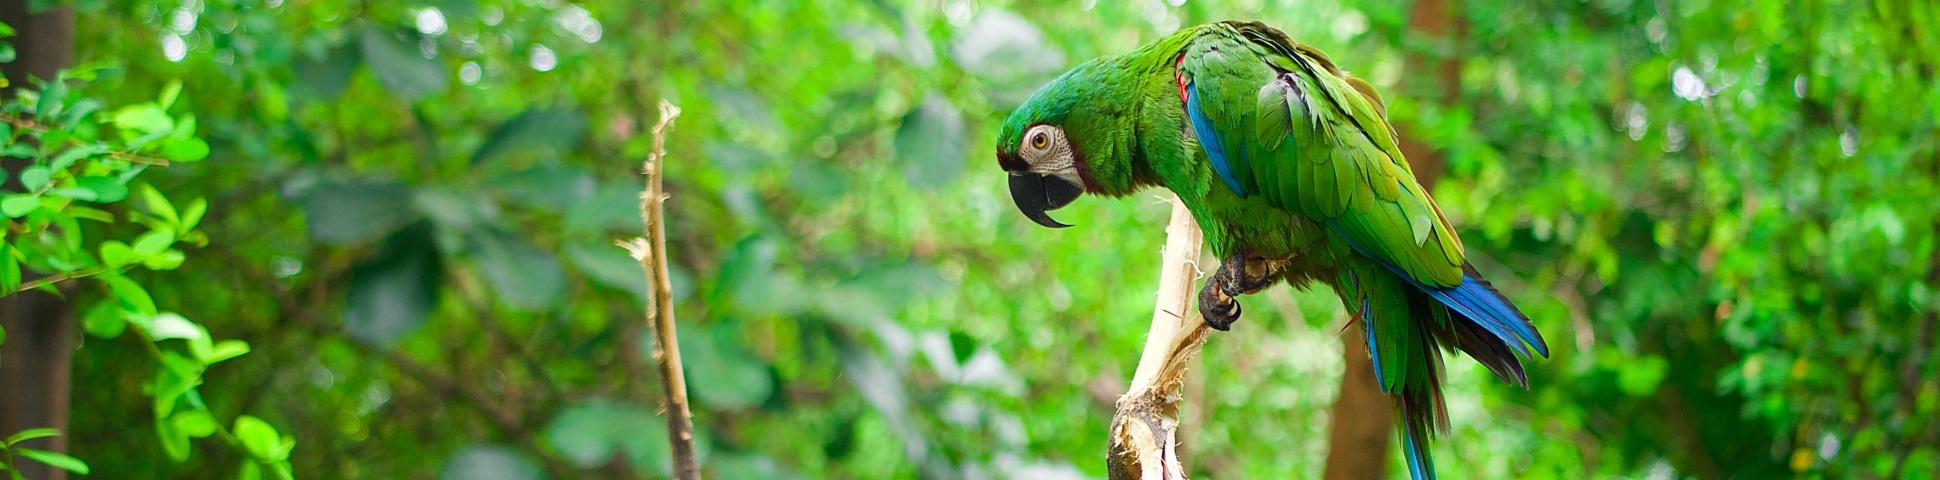 Parrot in Ecuadorian Amazon Rainforest